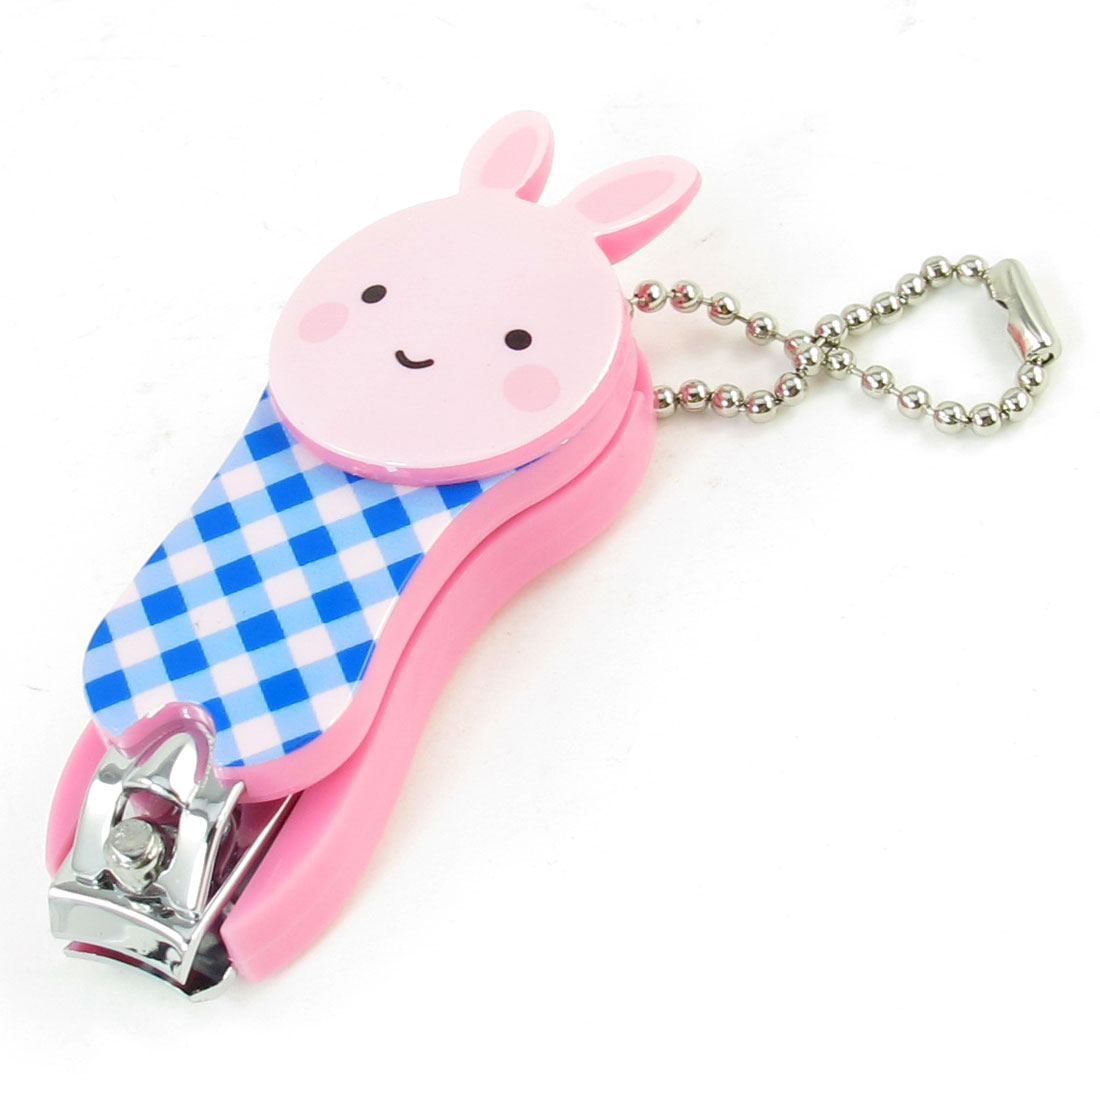 10mm Wide Mouth Key Ring Pink Blue Cartoon Rabbit Design Nail Clipper Tool